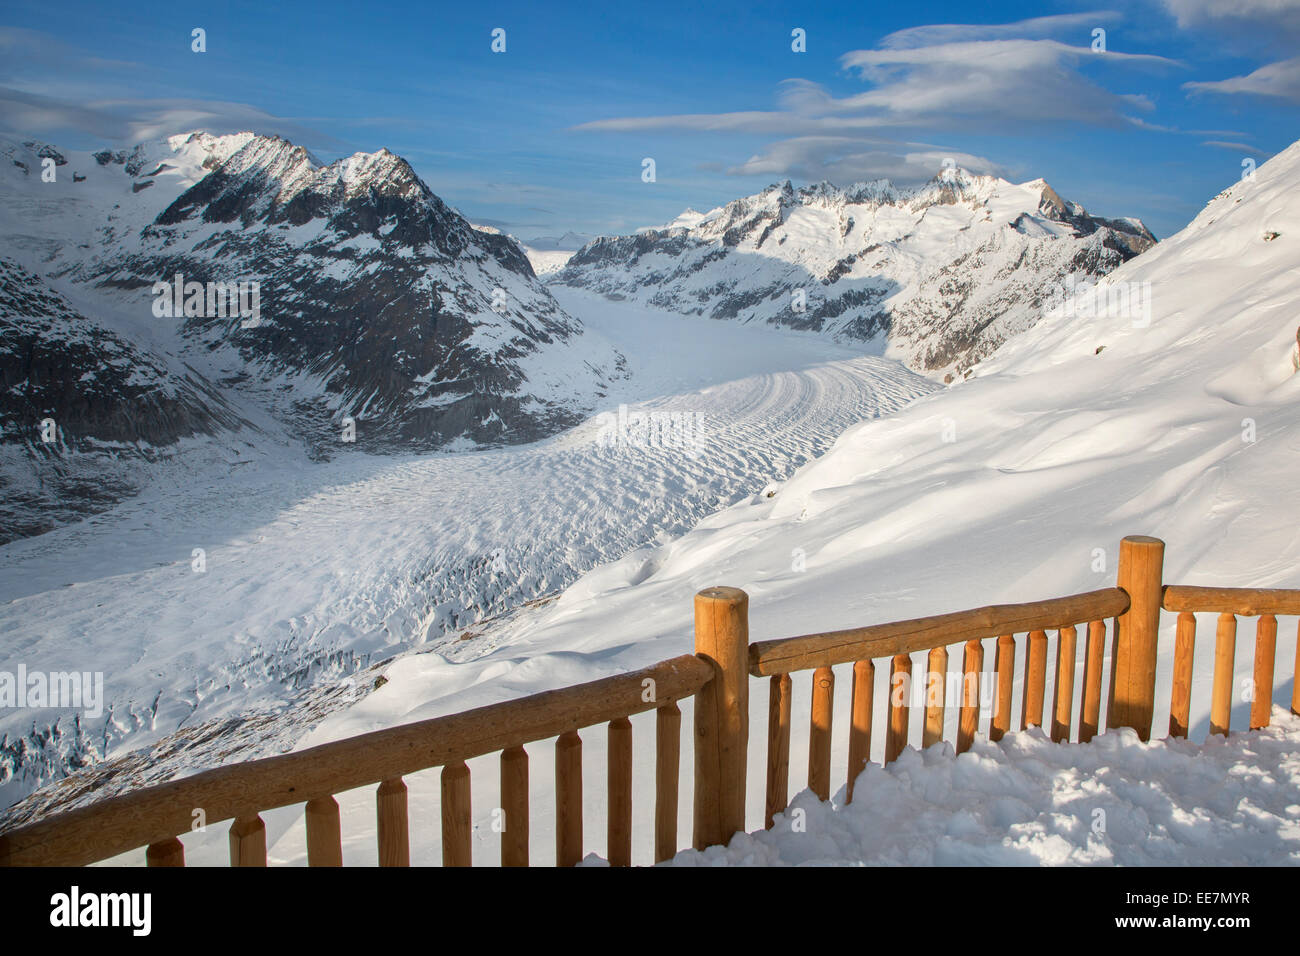 View over the mountains in winter surrounding the Swiss Aletsch Glacier, largest glacier in the Alps, Switzerland - Stock Image